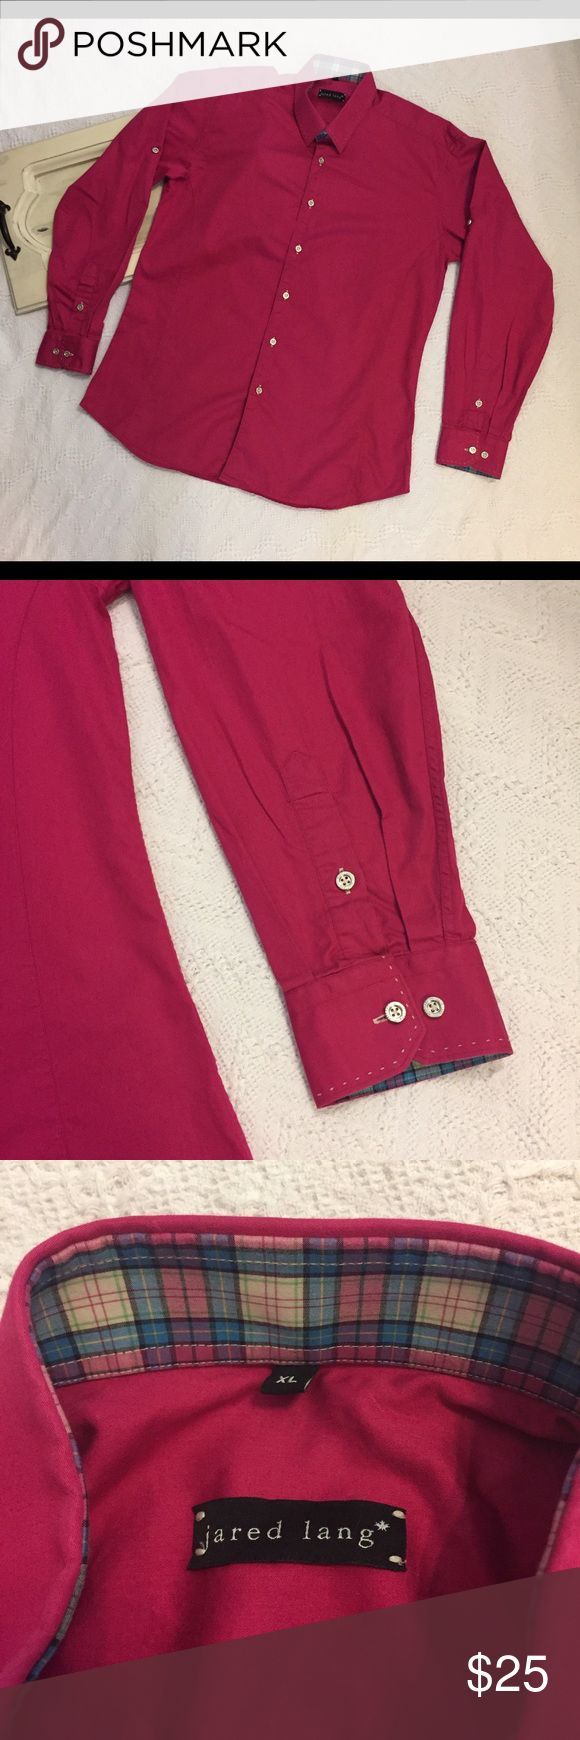 "Men's Jared Lang L/S Pink button down shirt XL EUC Men's Jared Lang long sleeve button down shirt size XL.  Nice Dark Pink color with Plaid accents on the collar & sleeves.  Awesome silver buttons and sleeves can be rolled up and buttoned to show the plaid.  Gently used condition, no flaws or defects. Please see pictures for details.   Armpit to Armpit - 22.5""  Length - 30.5""   Thank you for shopping with us, we appreciate your business.  *All items are measured laying flat, please be sure…"